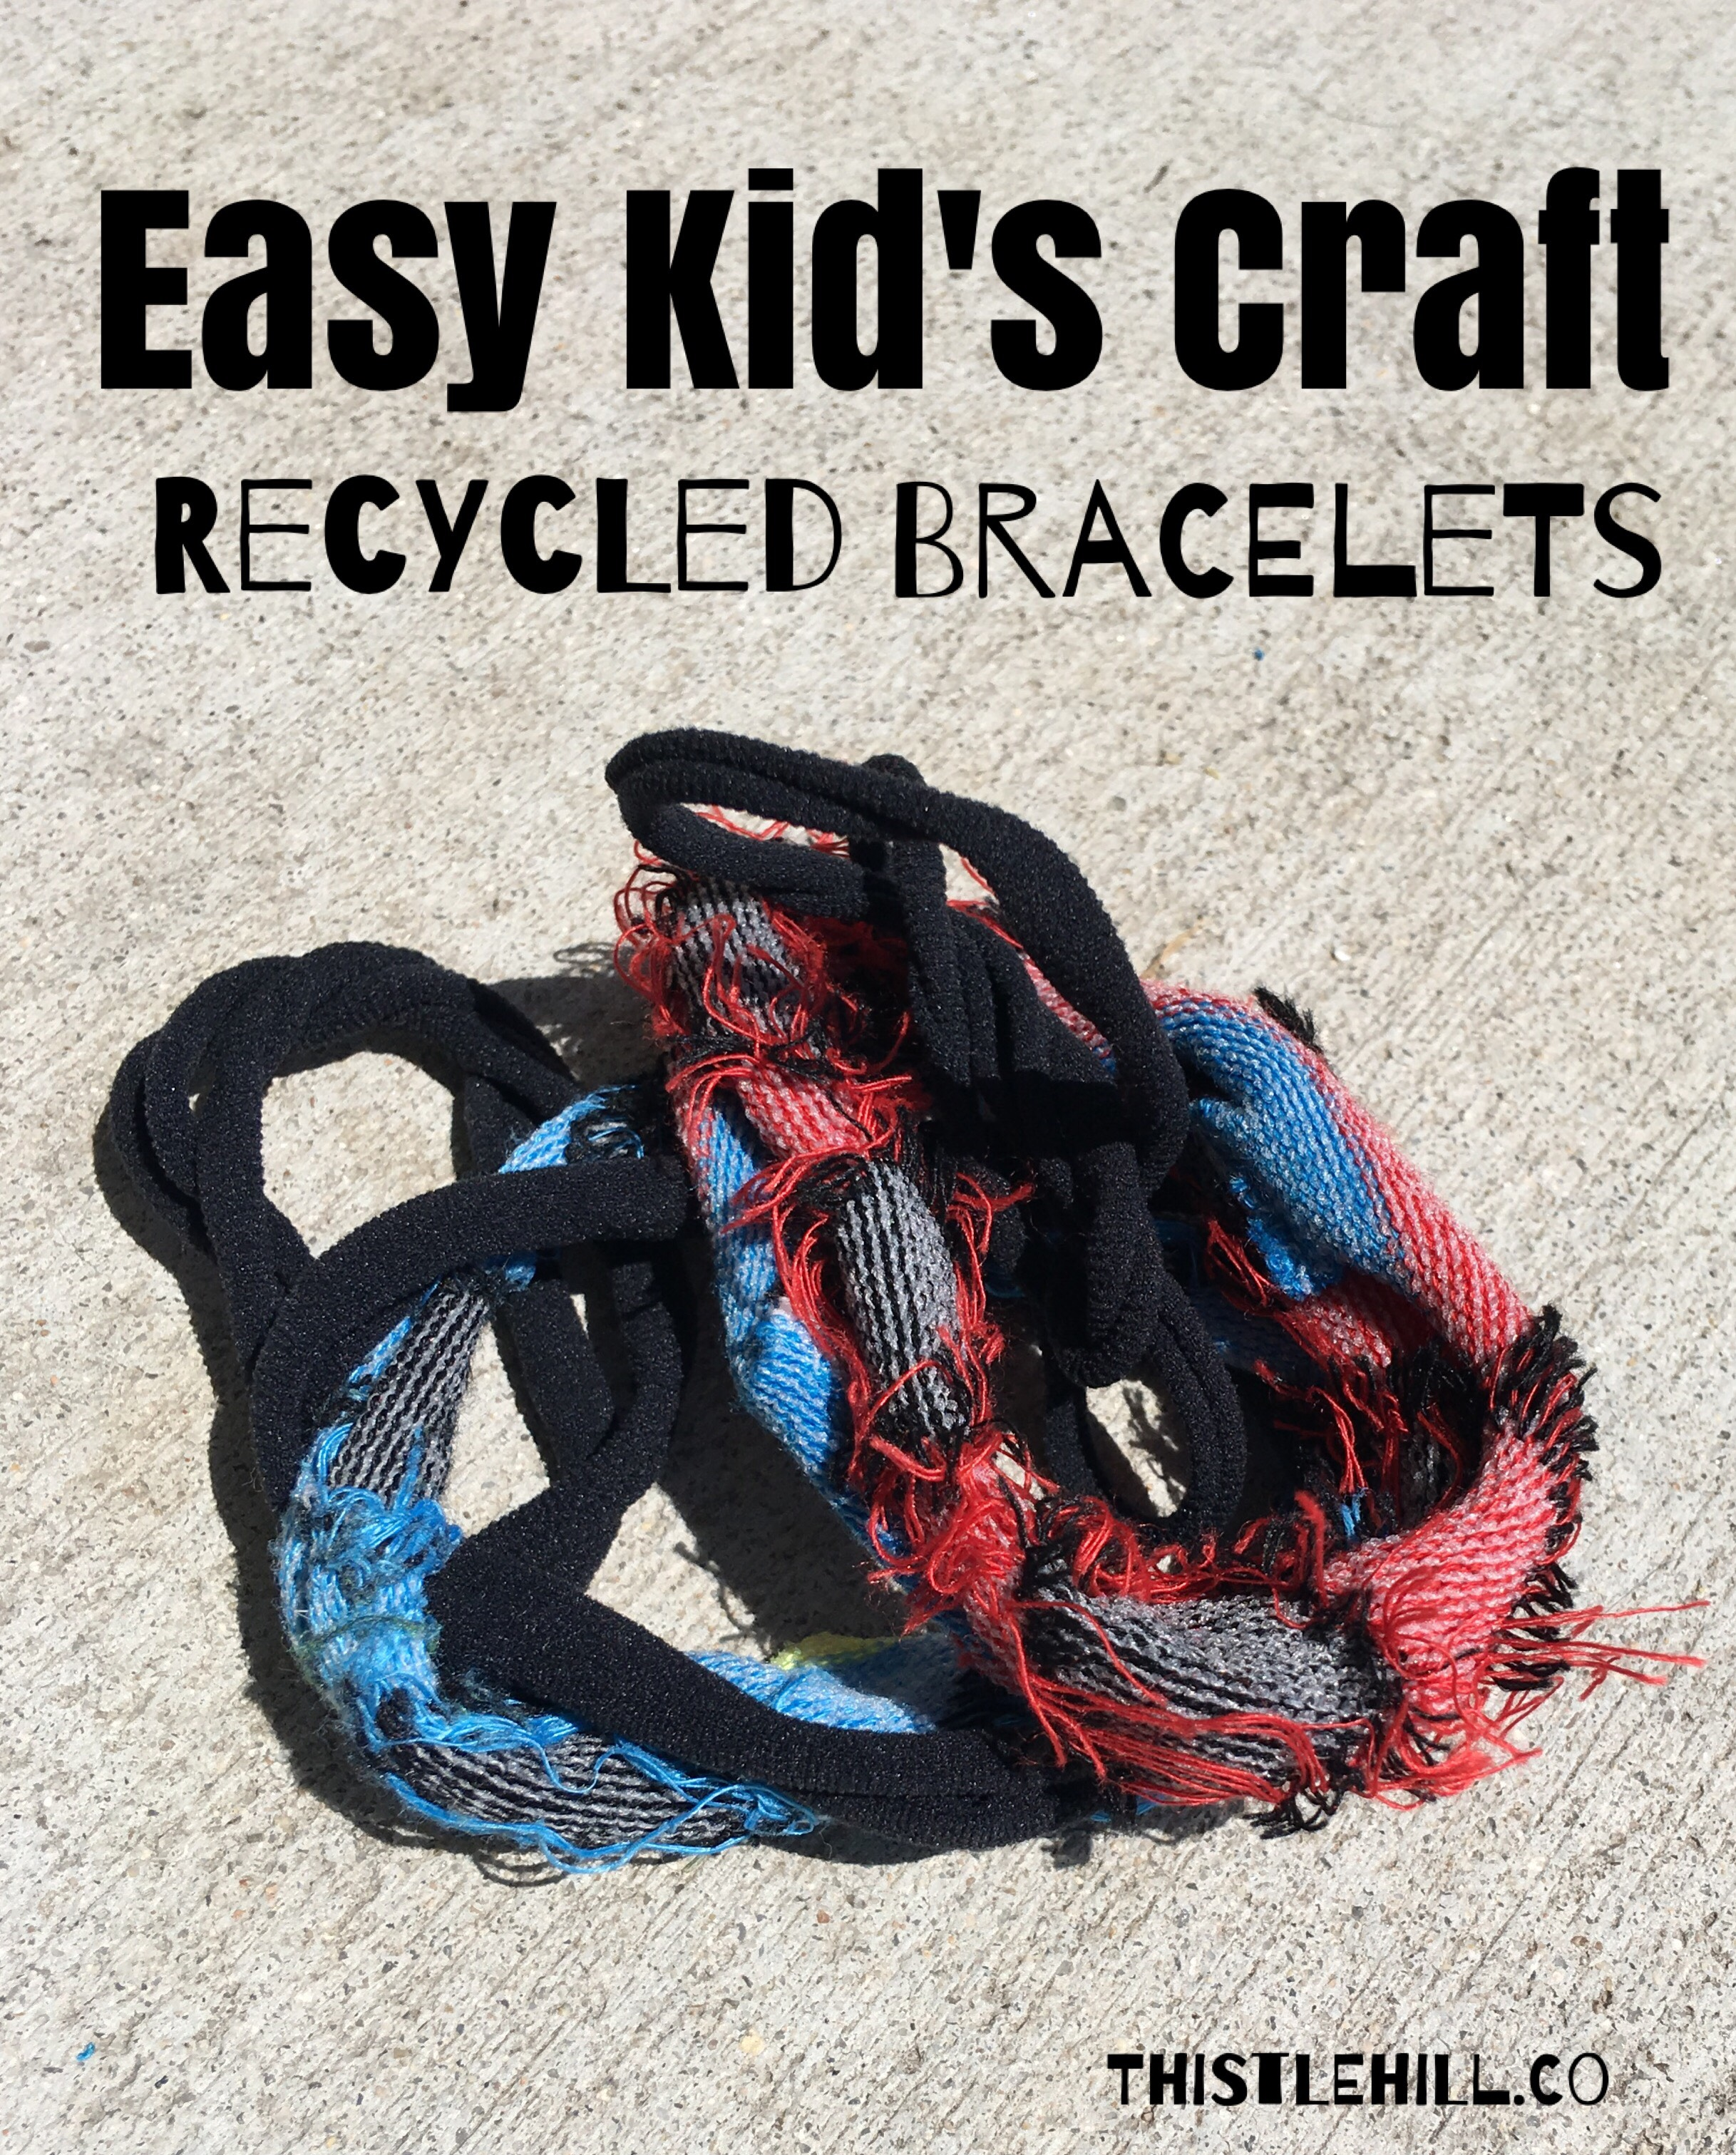 Easy Kid's Craft Recycled Bracelets - Thistle Hill